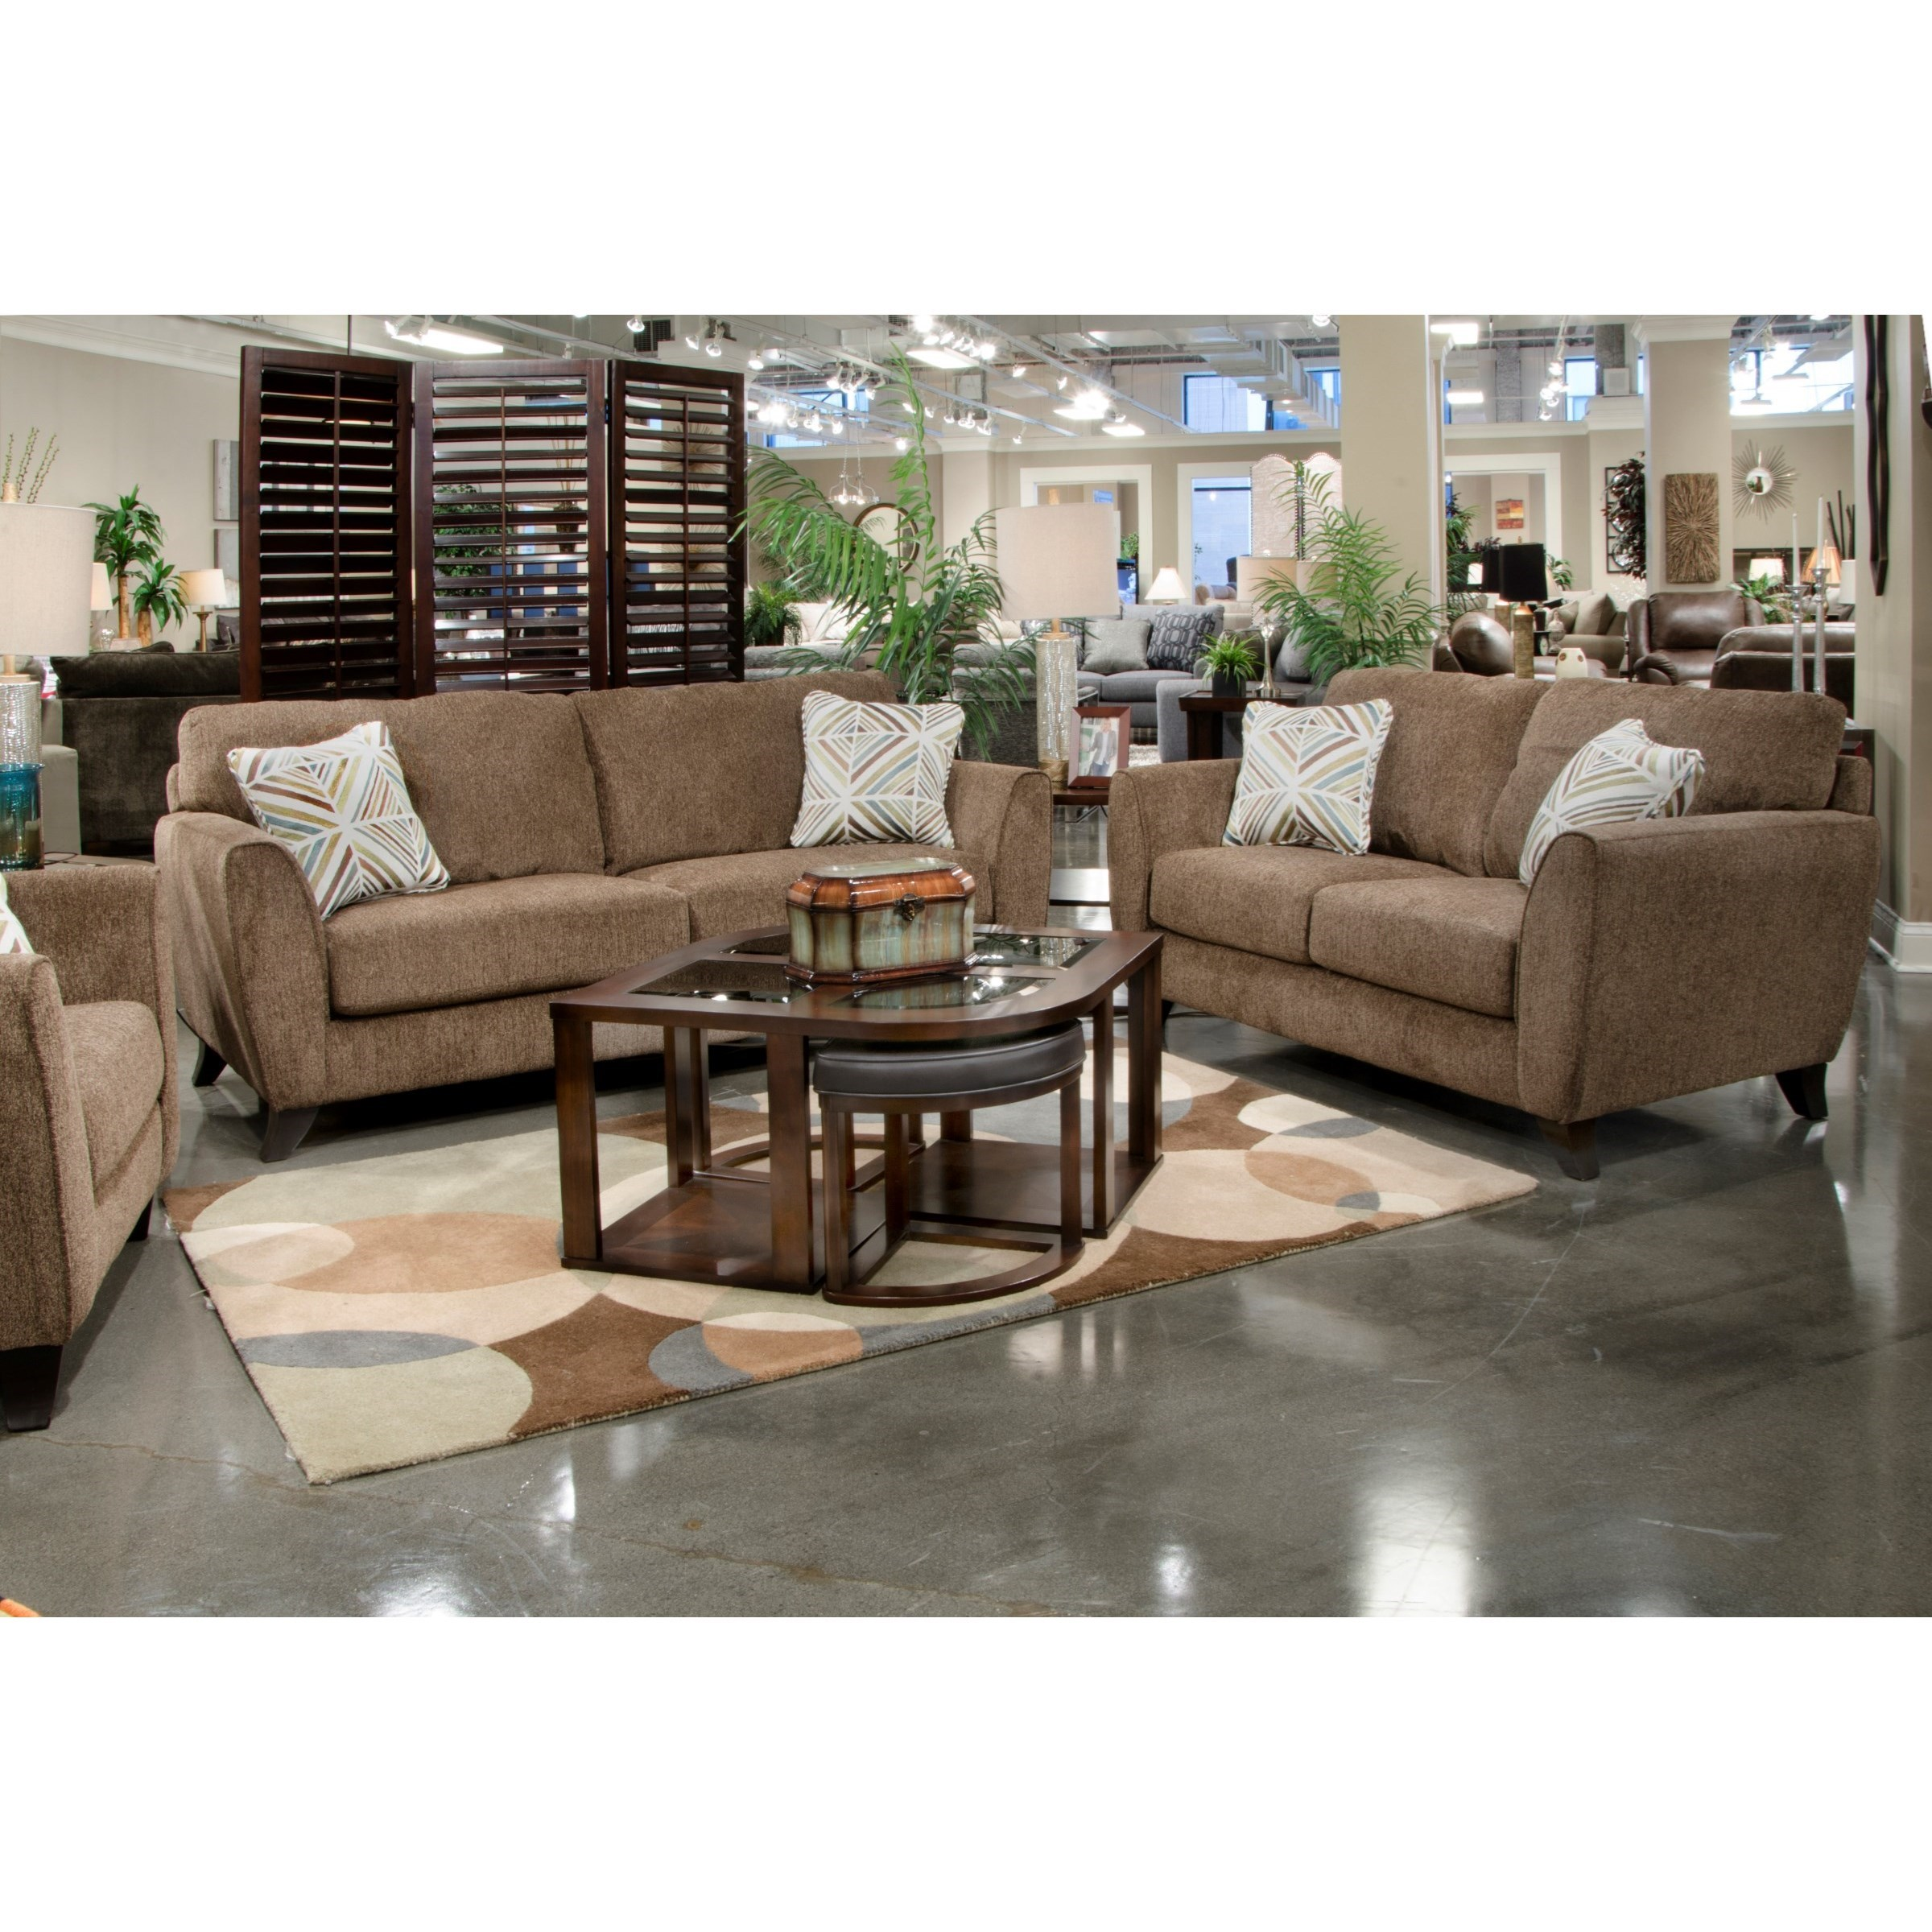 Alyssa Living Room Group by Jackson Furniture at Zak's Warehouse Clearance Center